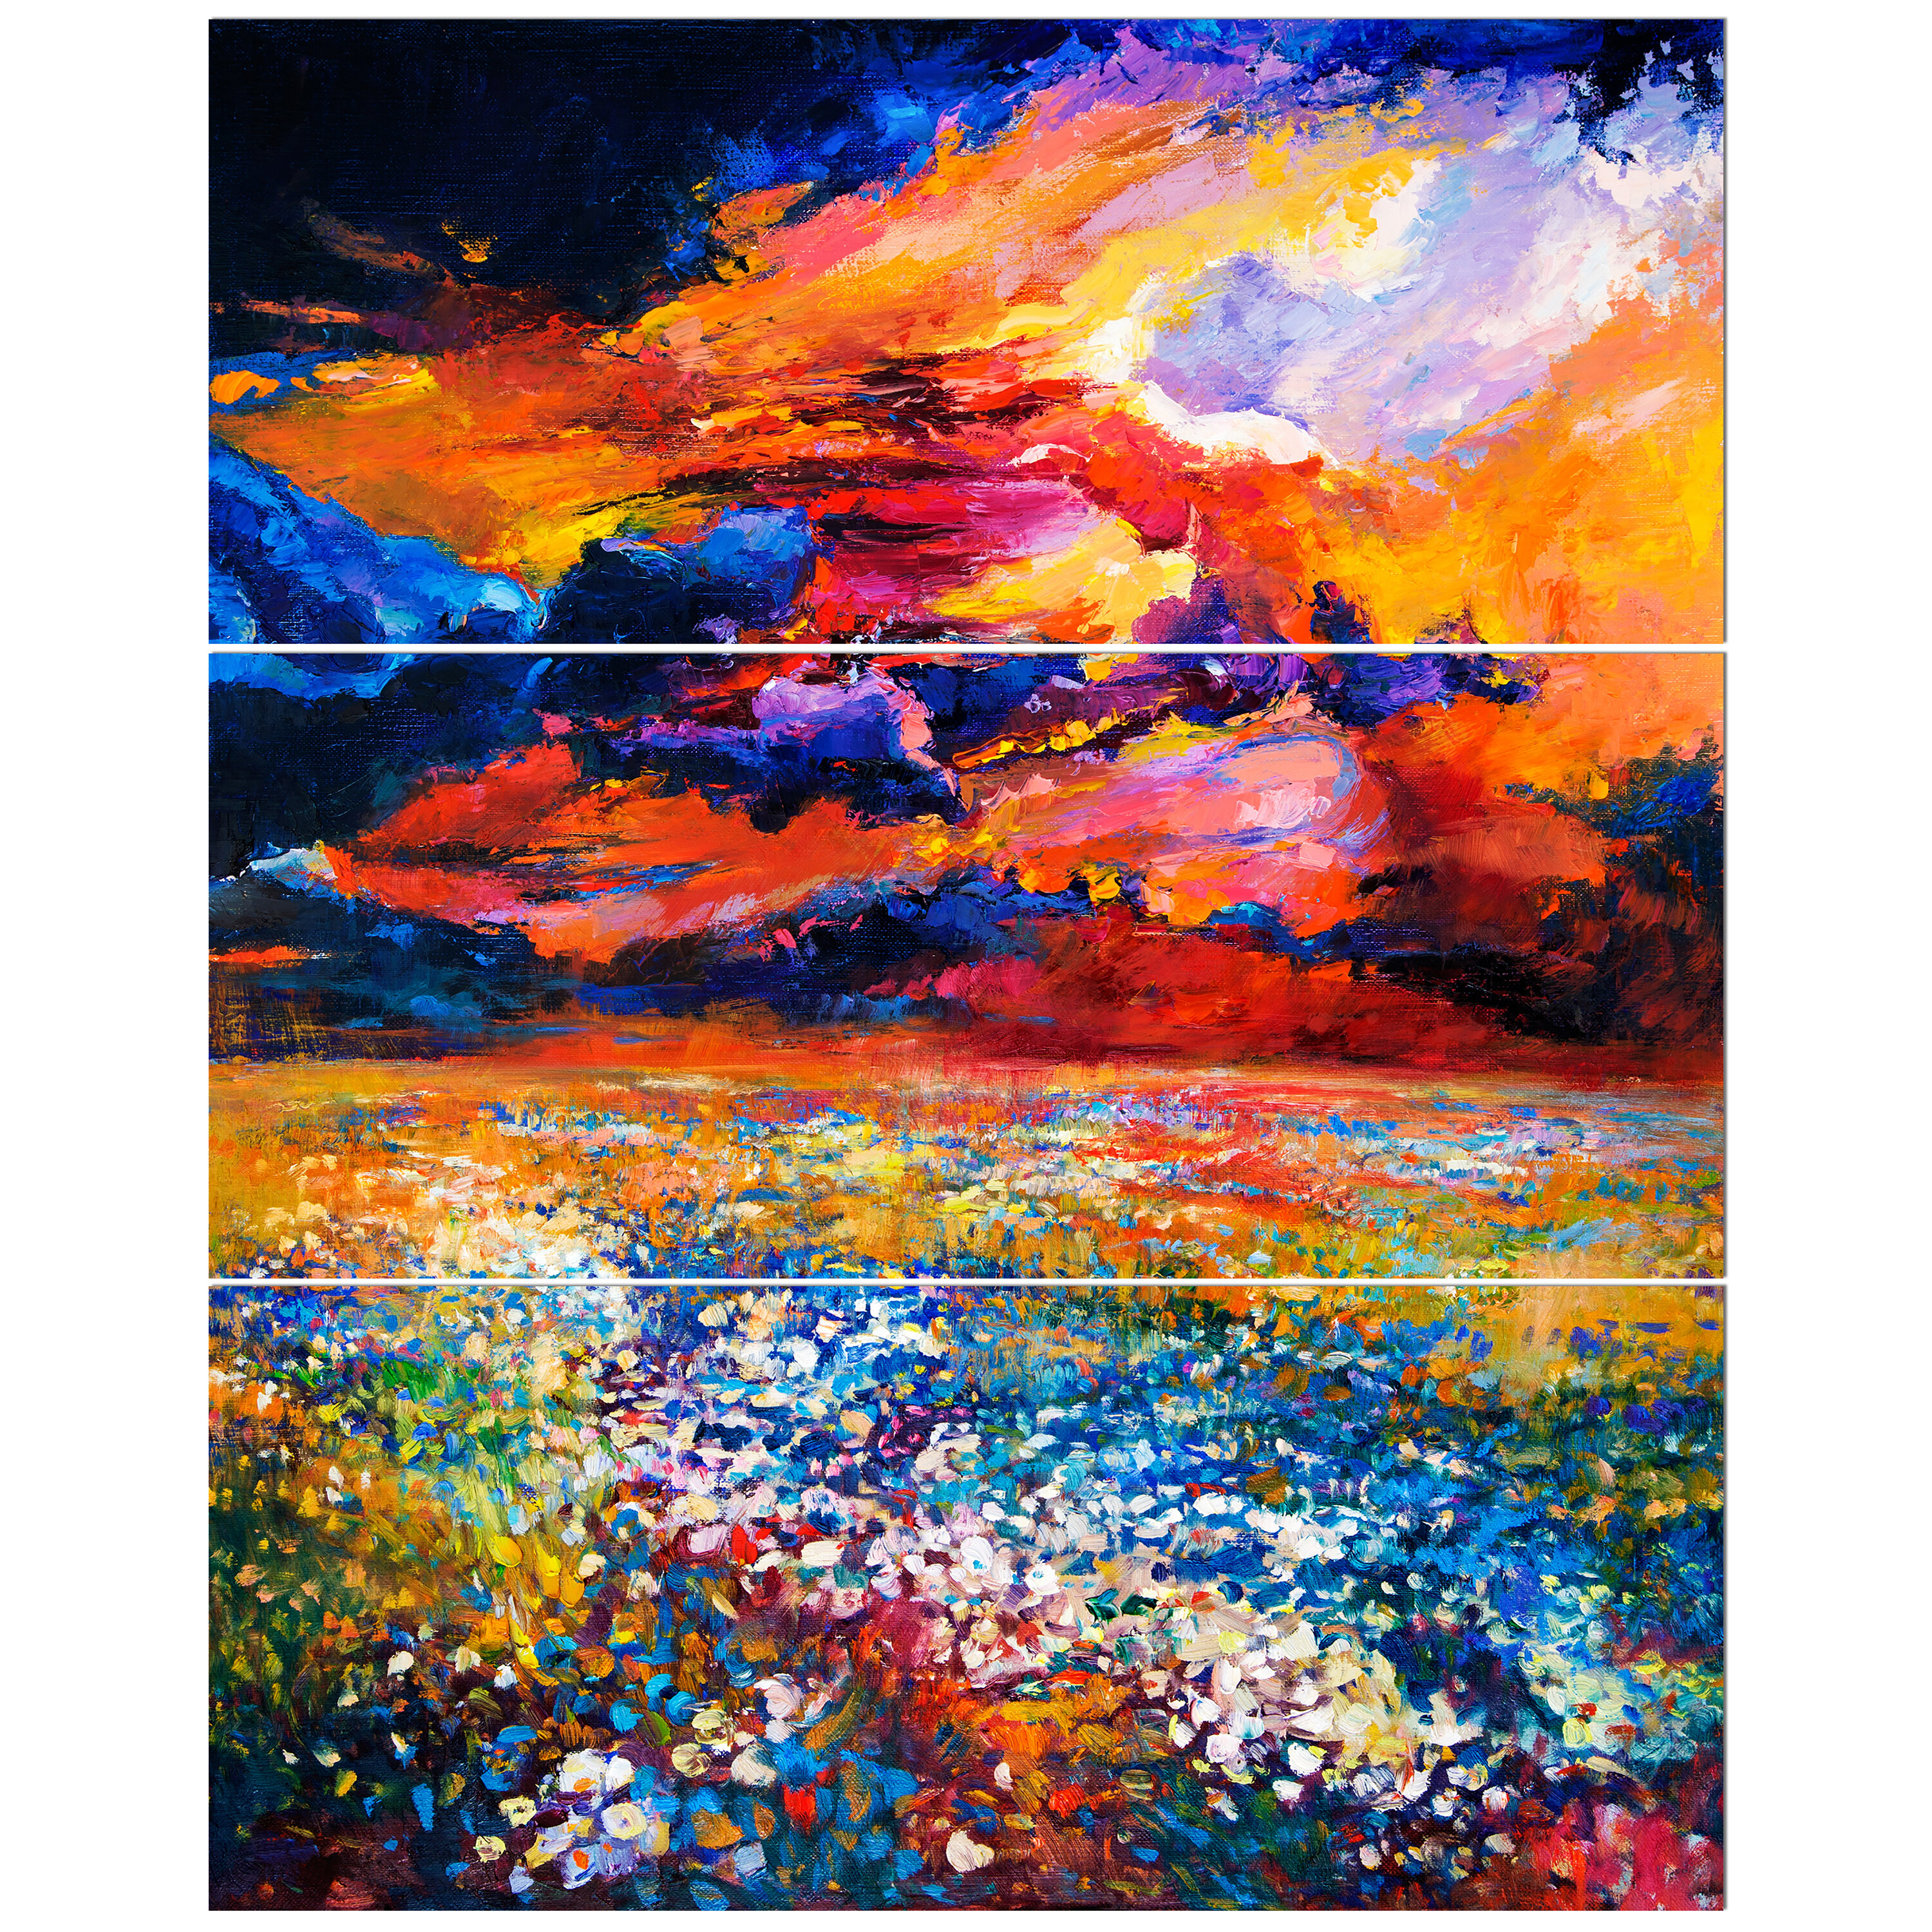 East Urban Home Flower Field At Beautiful Sunset Oil Painting Print Multi Piece Image On Canvas Wayfair Ca